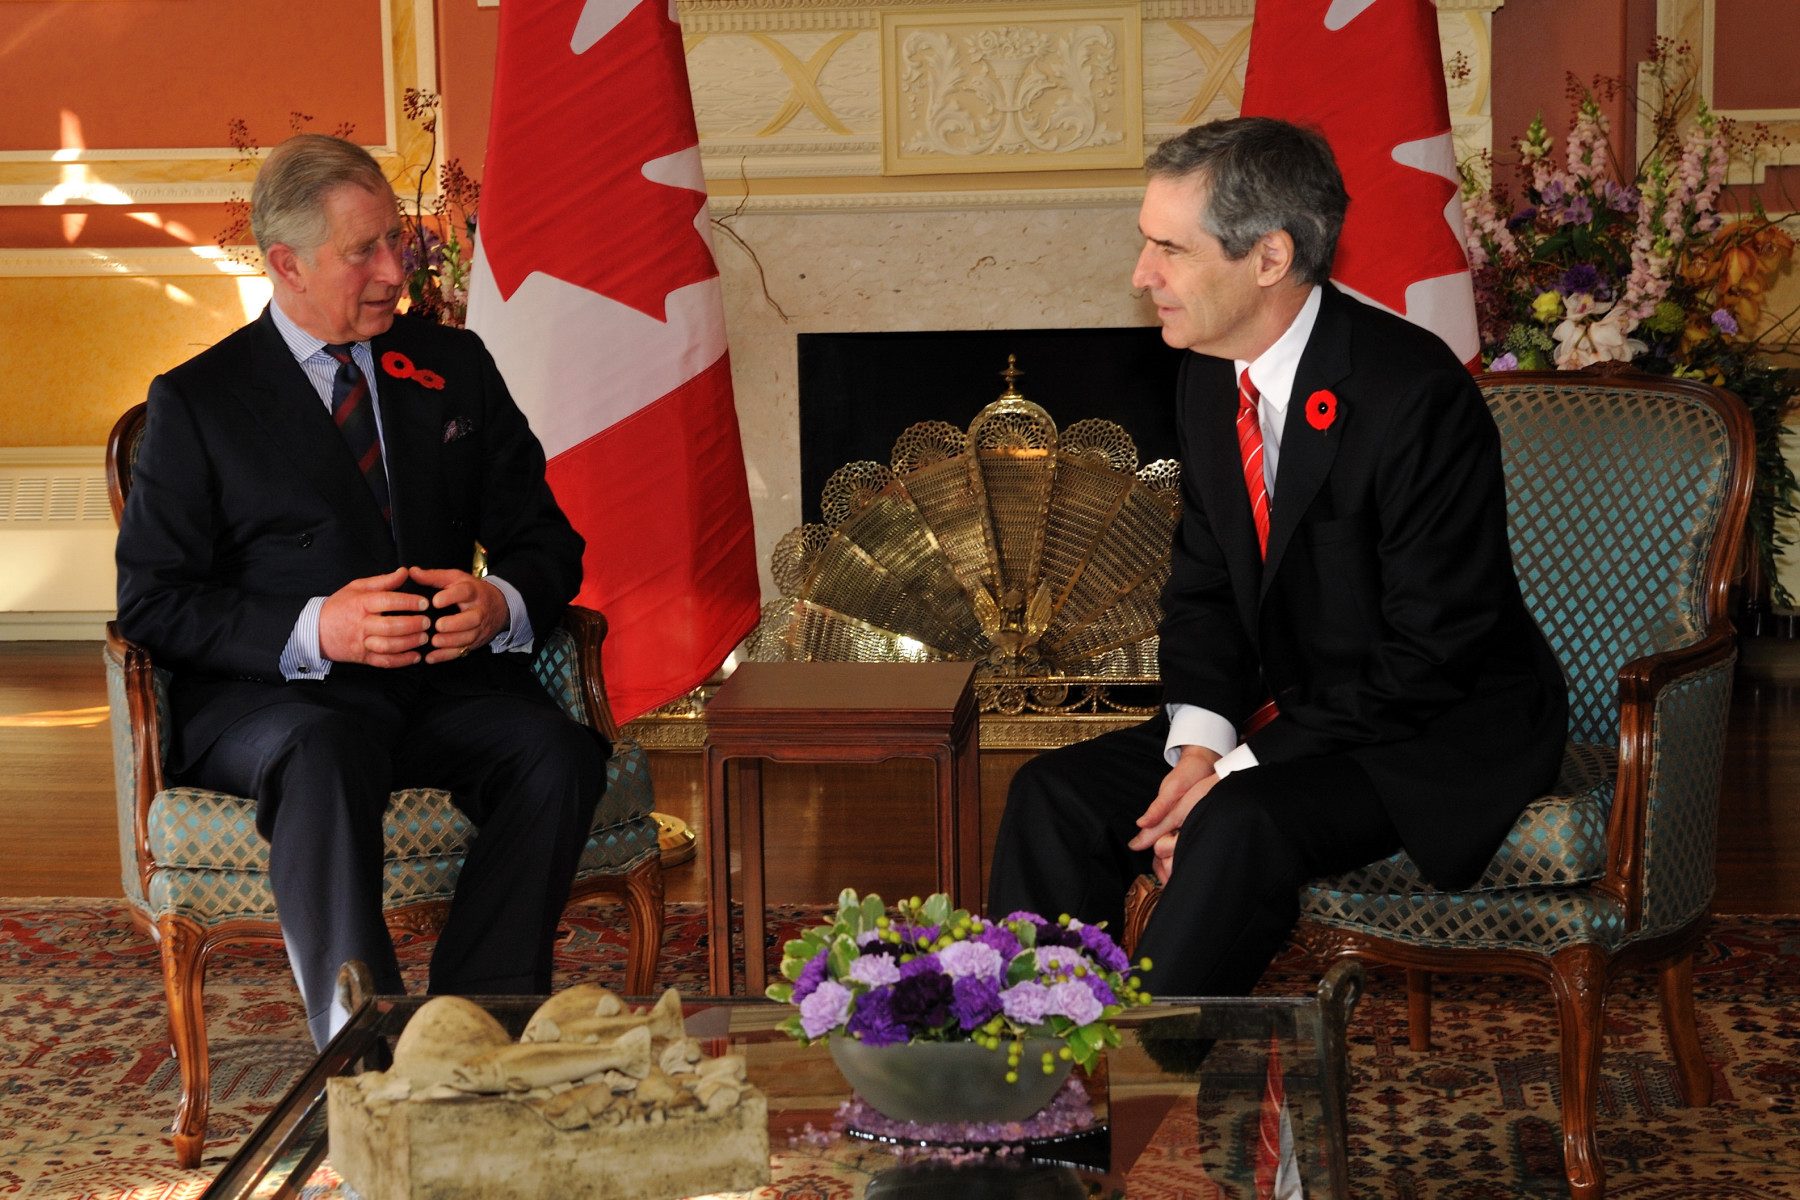 The Leader of the Official Opposition Michael Ignatieff also had the chance to meet The Prince of Wales at Rideau Hall.